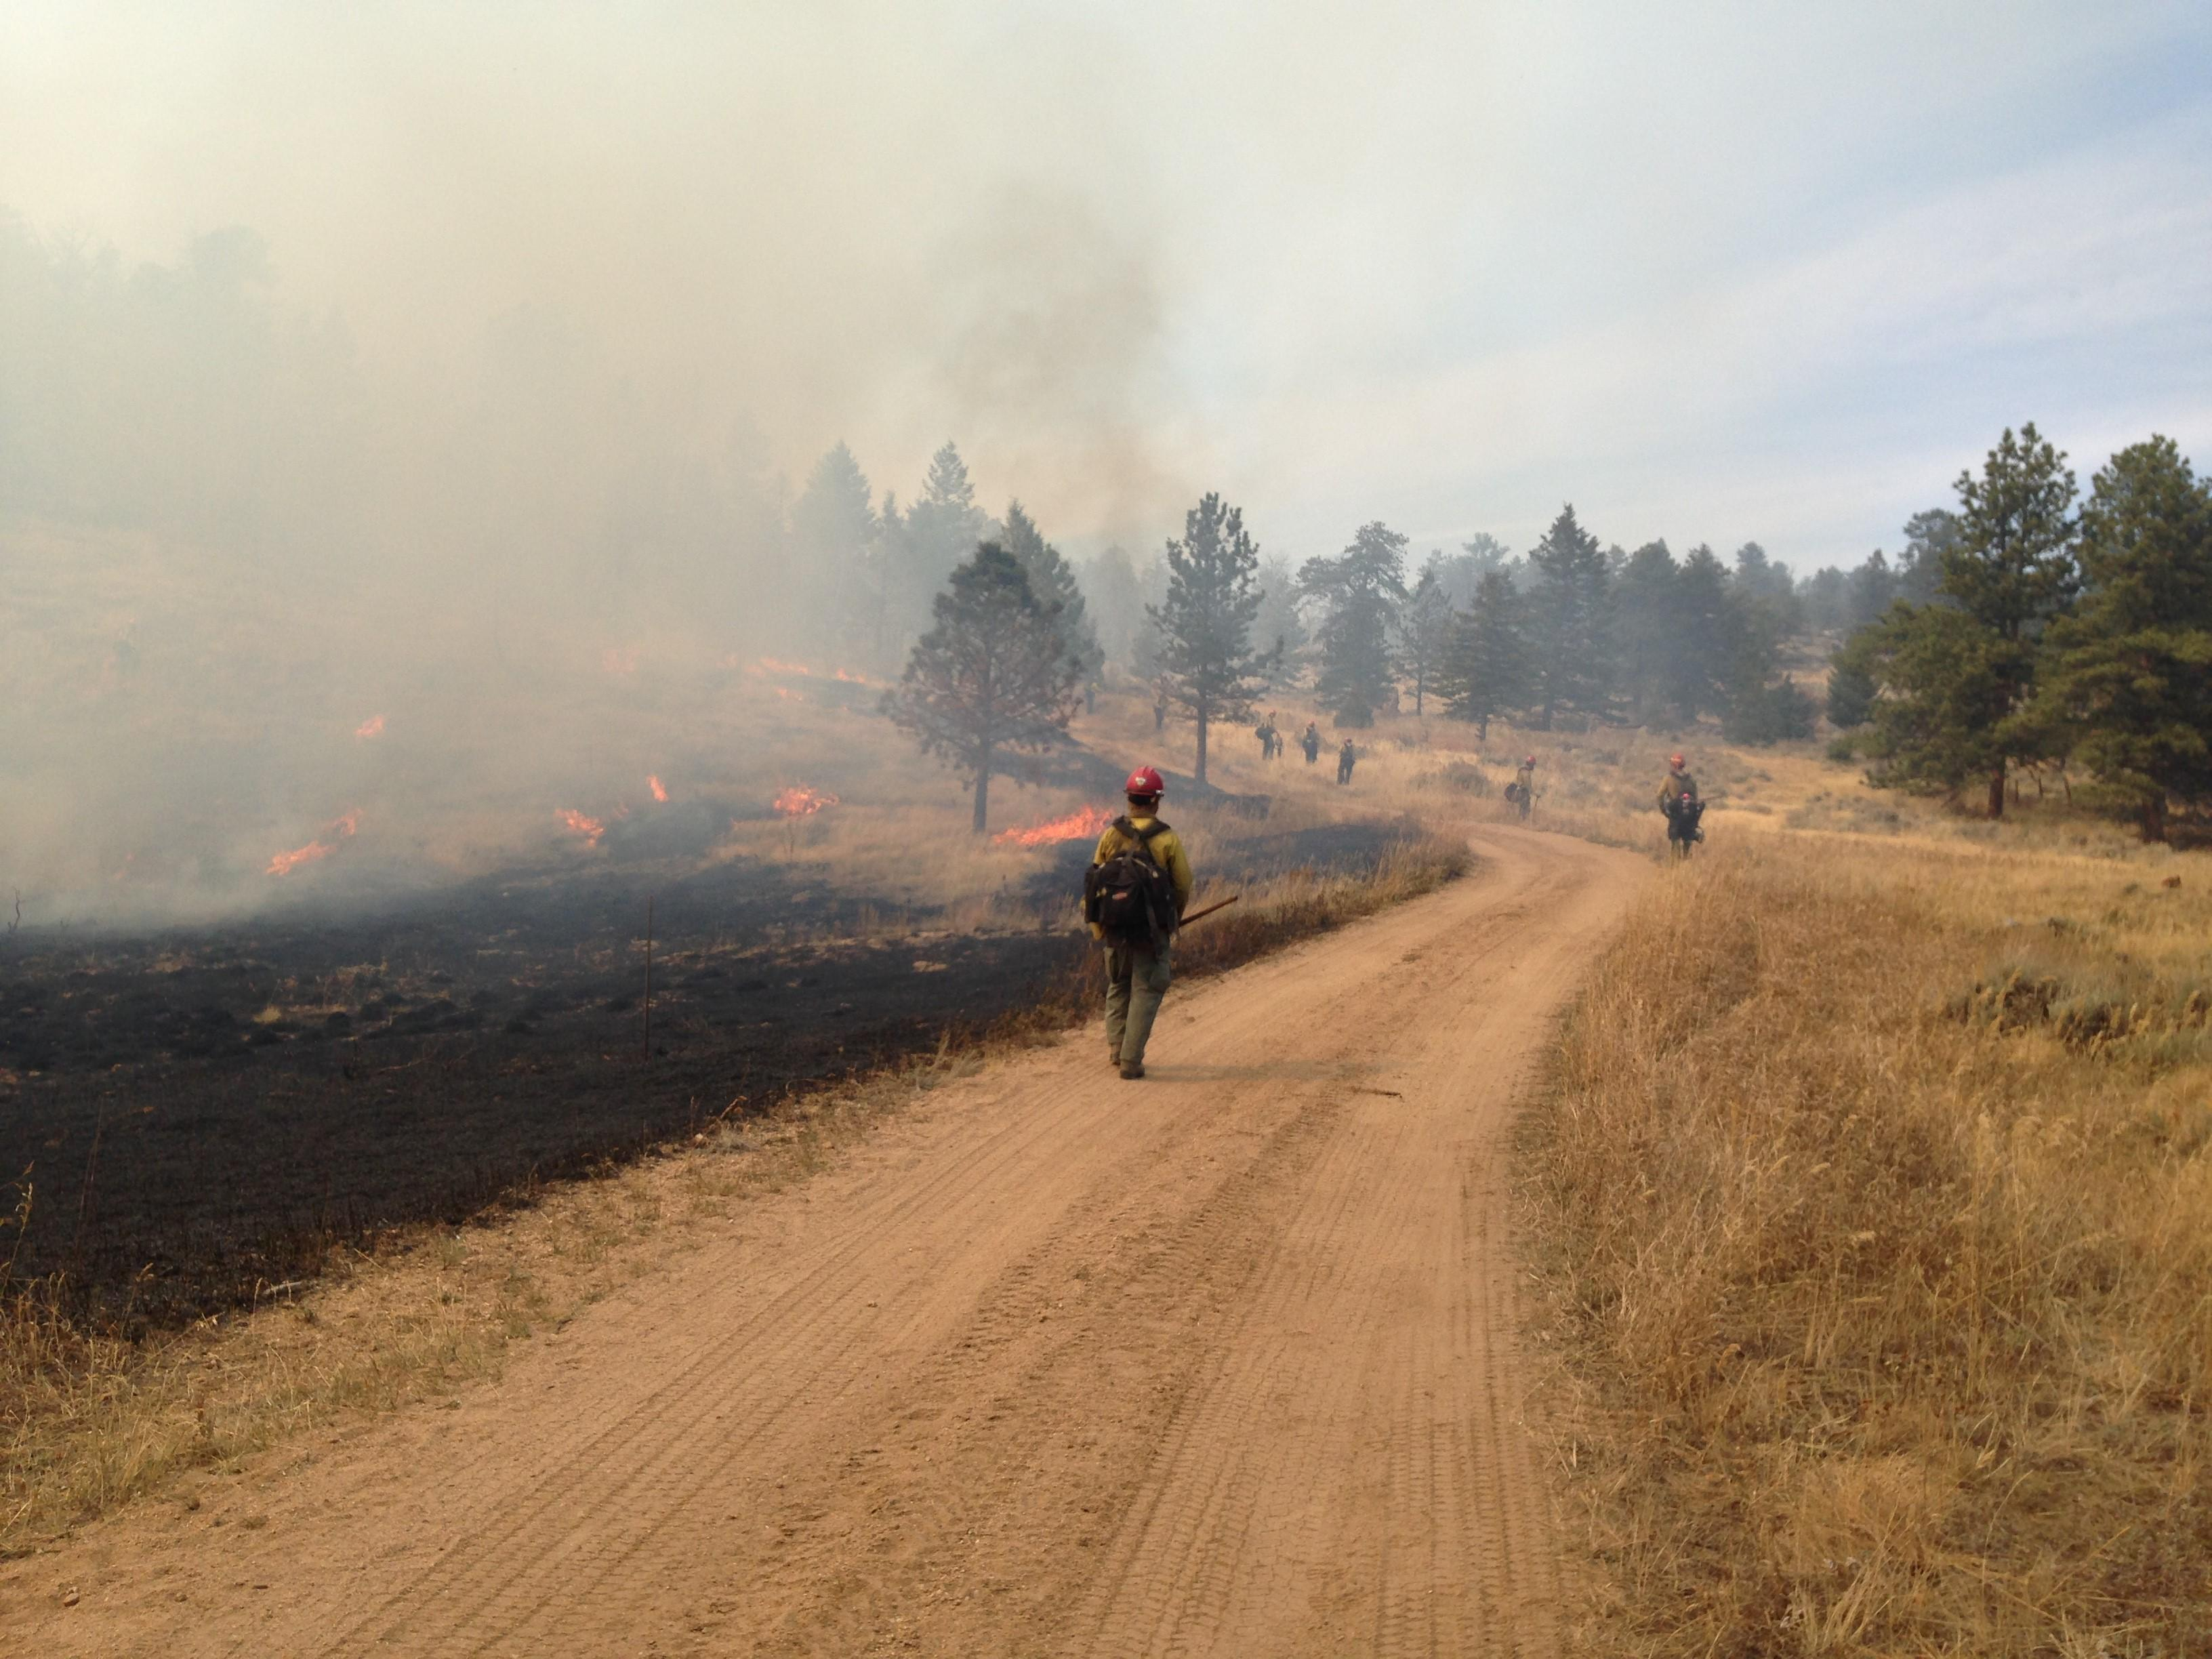 Firefighters walk along a dirt road with flames and black ground next to them.